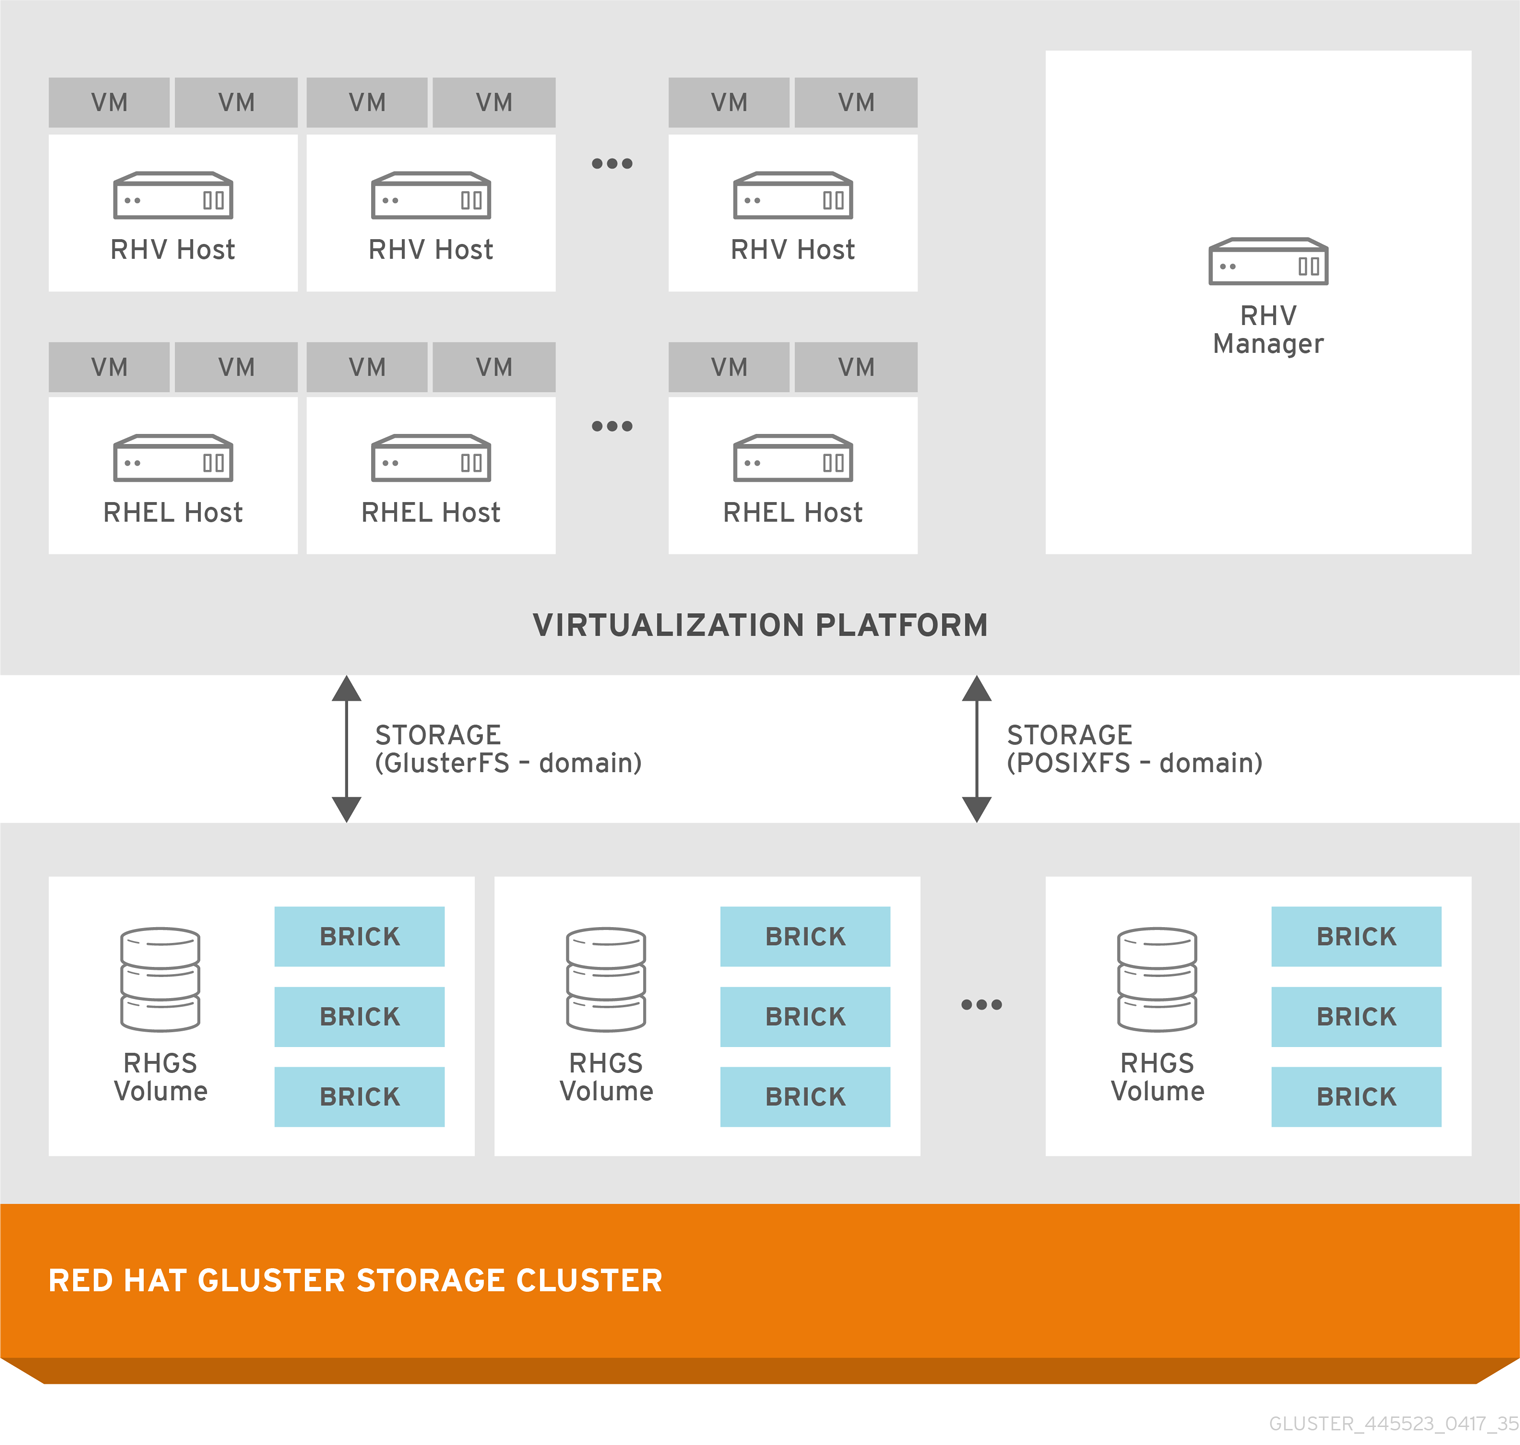 Architecture of integrated Red Hat Virtualization and Red Hat Gluster Storage